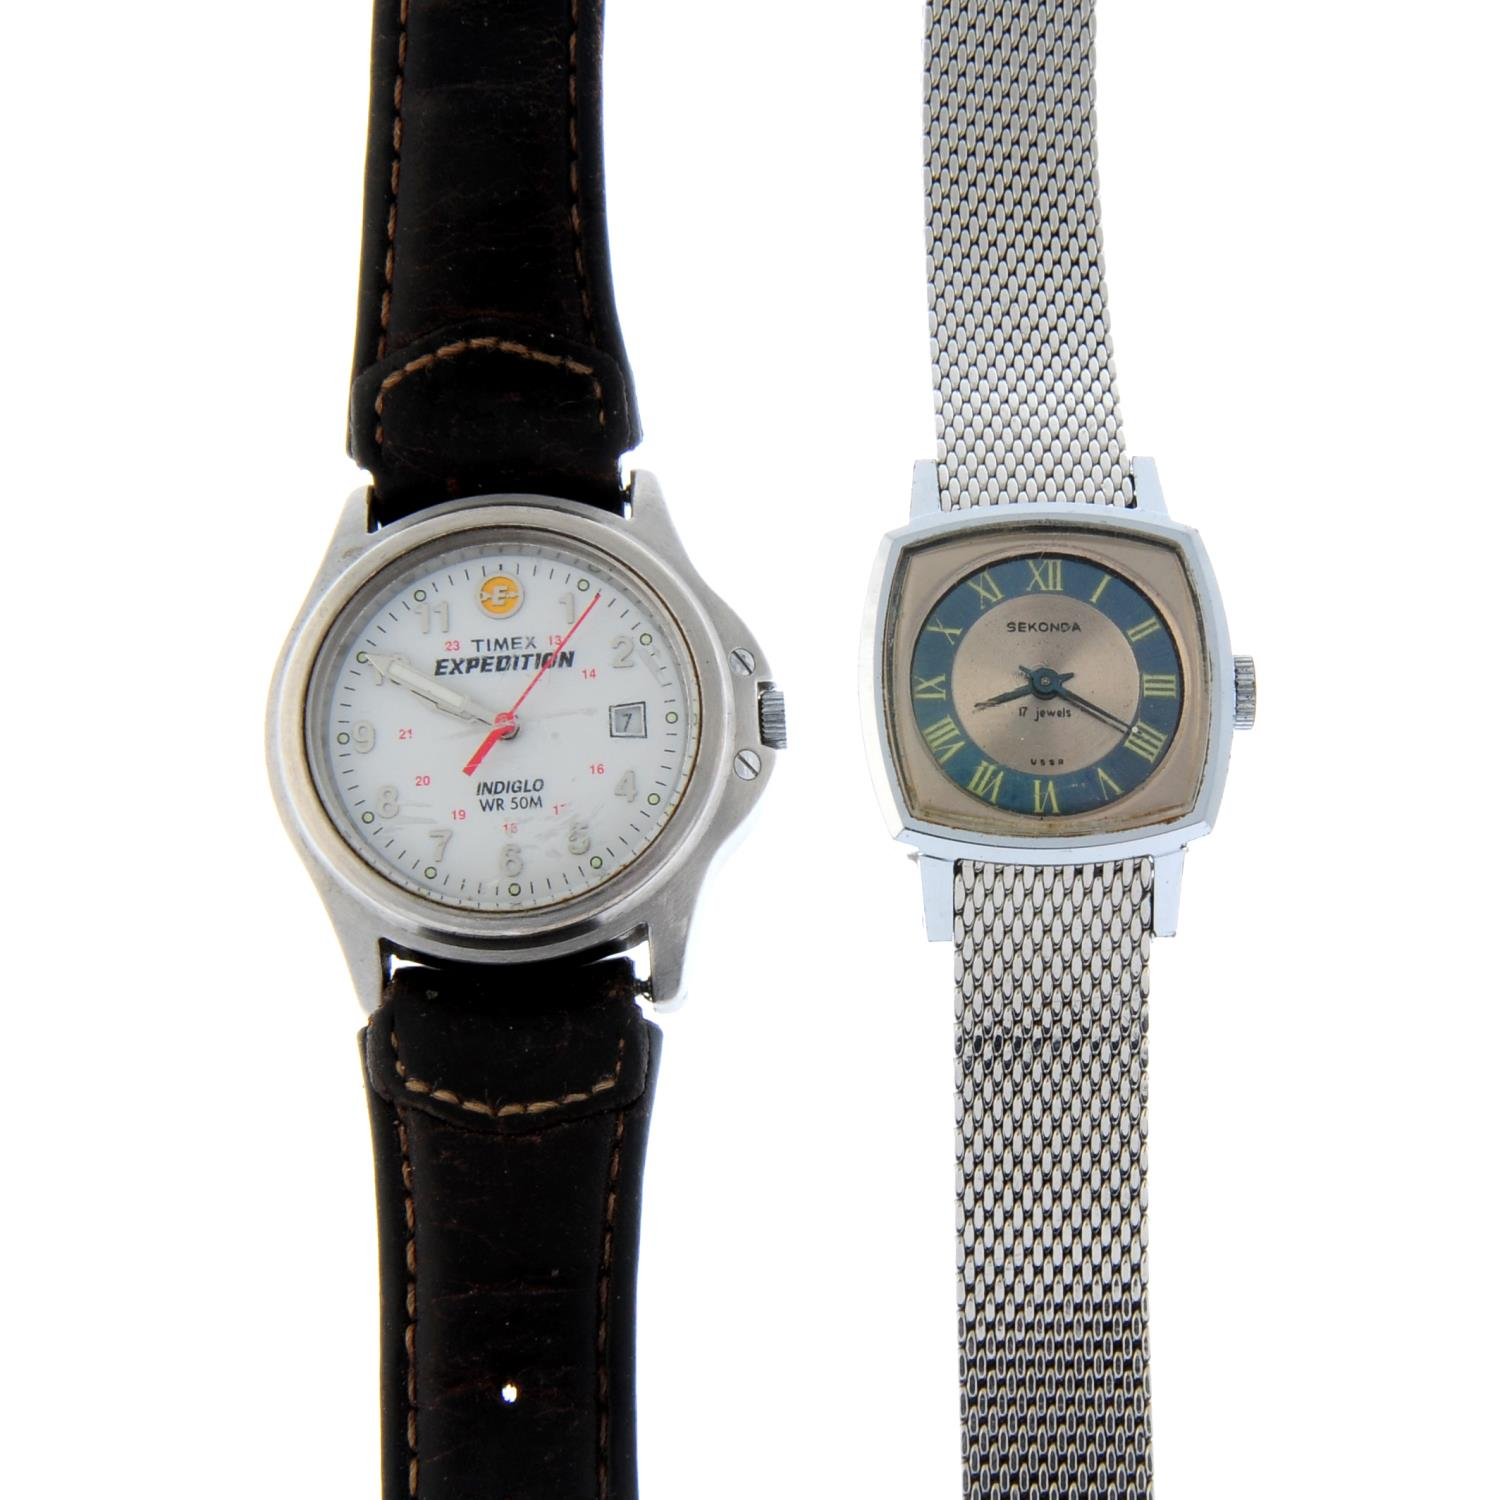 A bag of assorted watches.